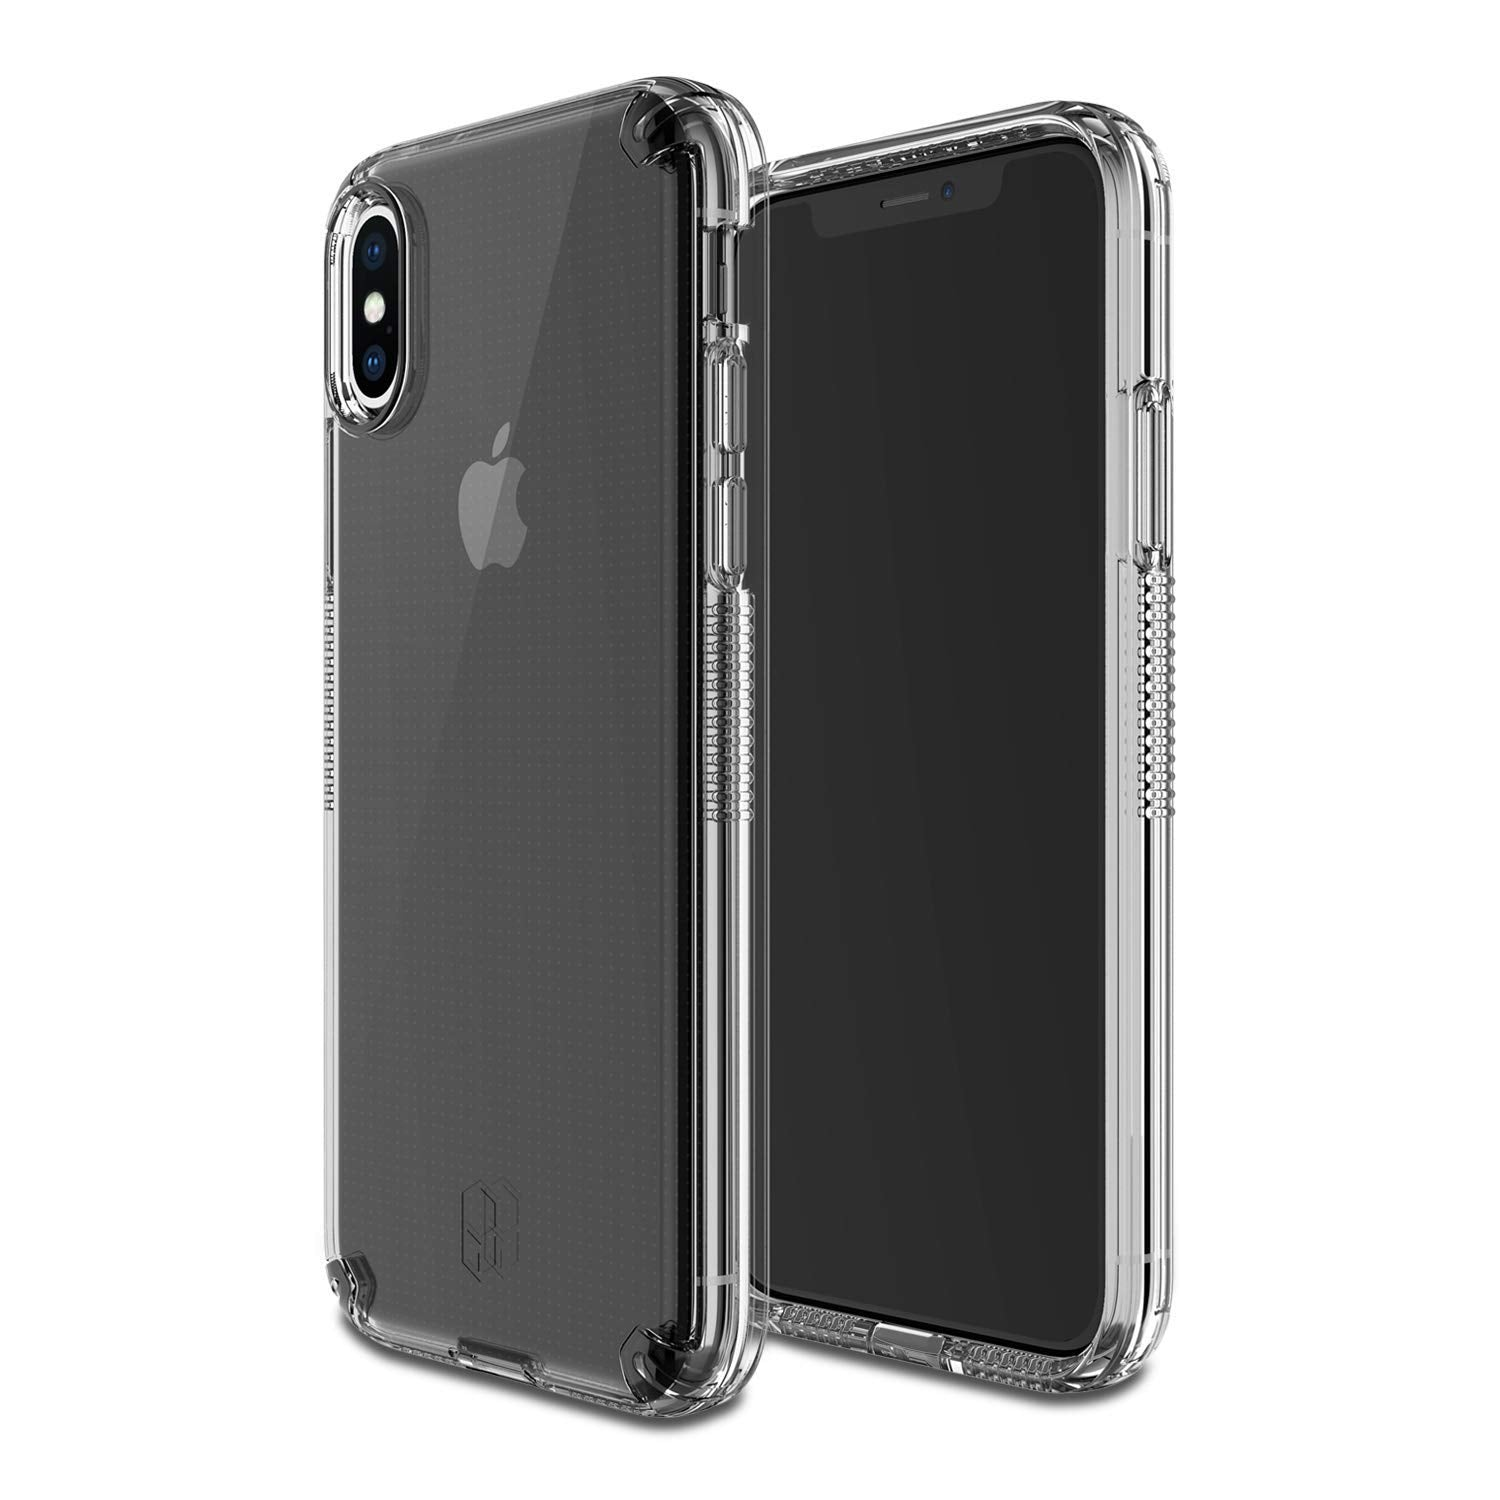 IPHONE XS MAX CASE - LEVEL VISION